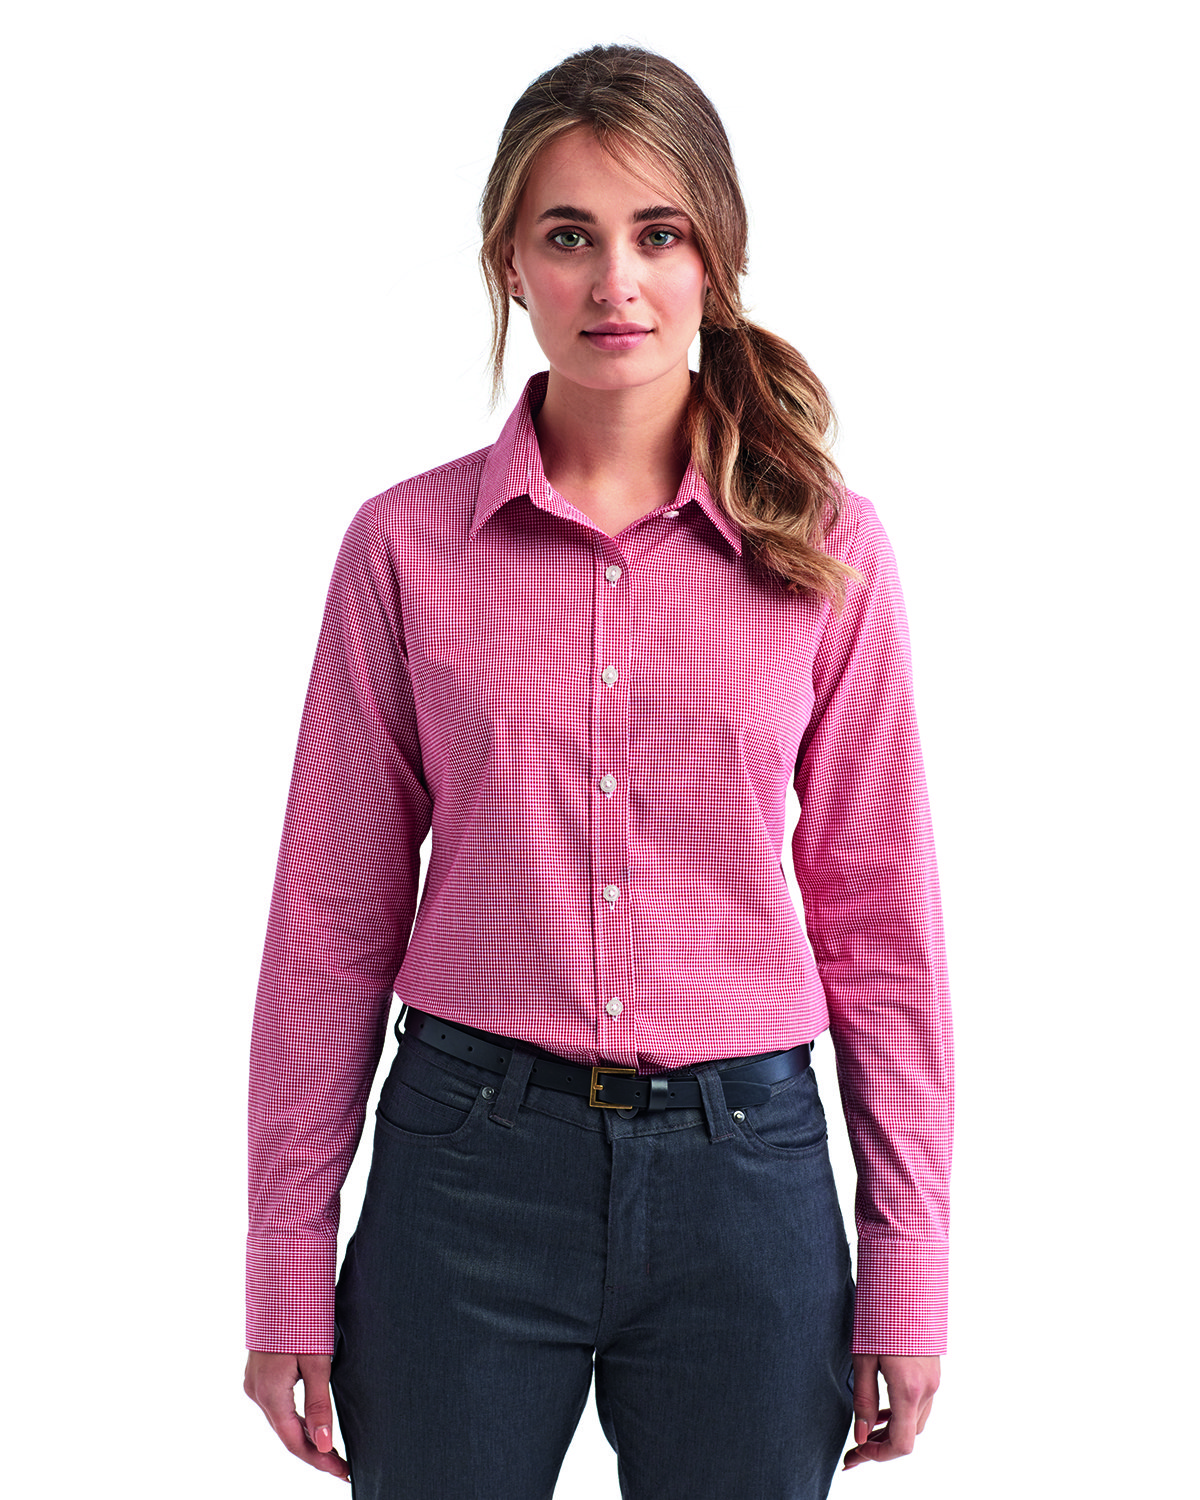 Artisan Collection by Reprime Ladies' Microcheck Gingham Long-Sleeve Cotton Shirt RED/ WHITE